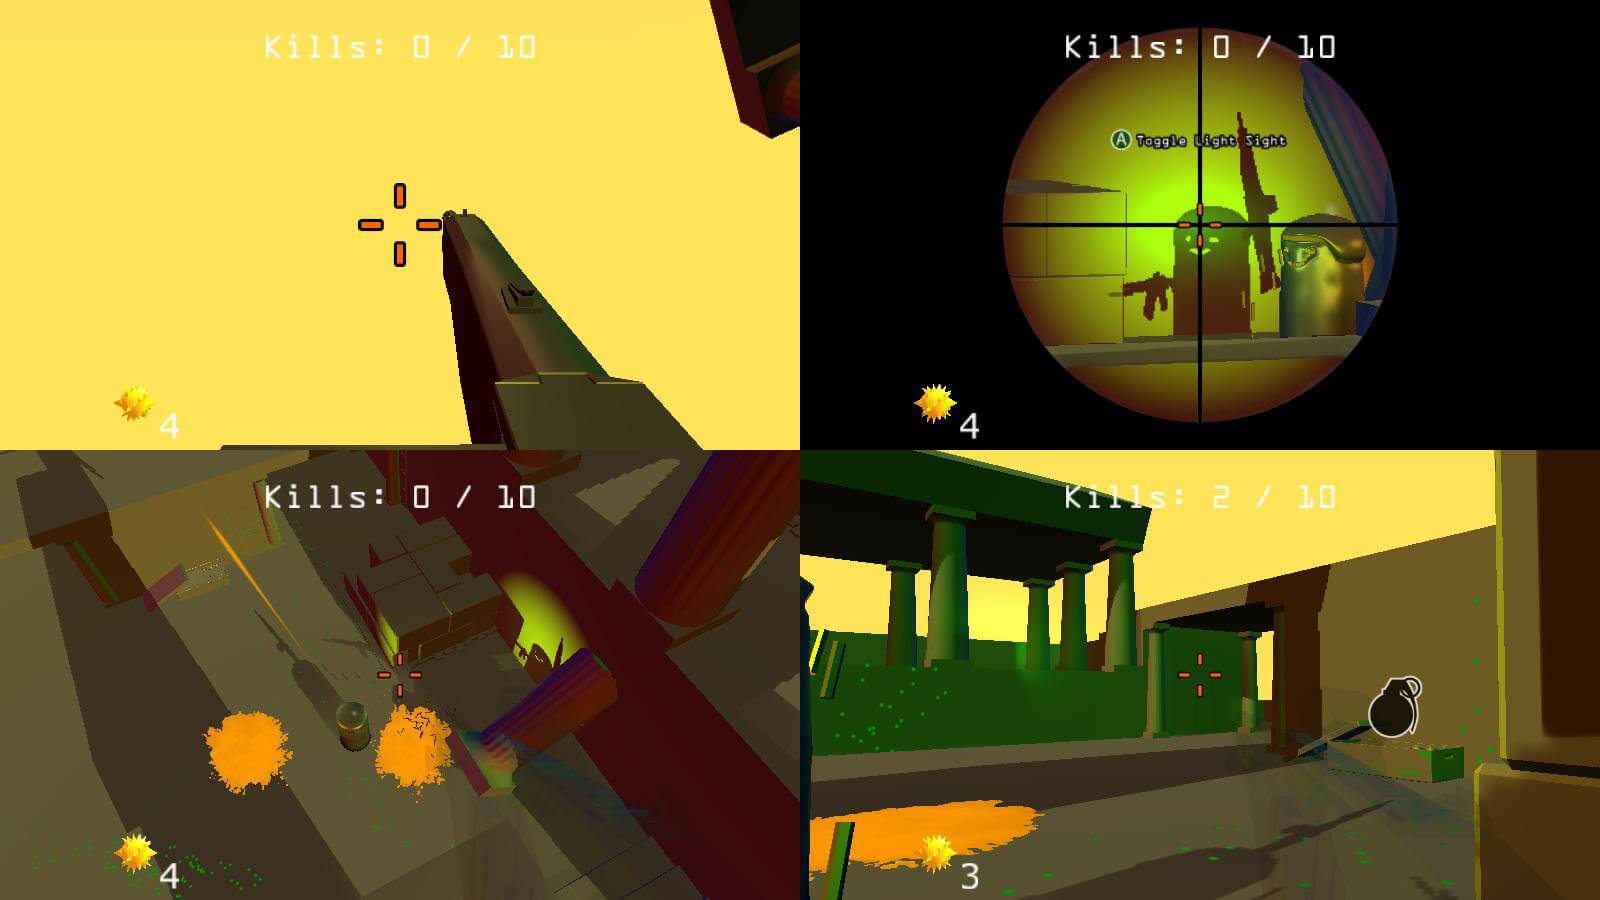 A four player split-screen view, one in the top right sees a player's shadow.